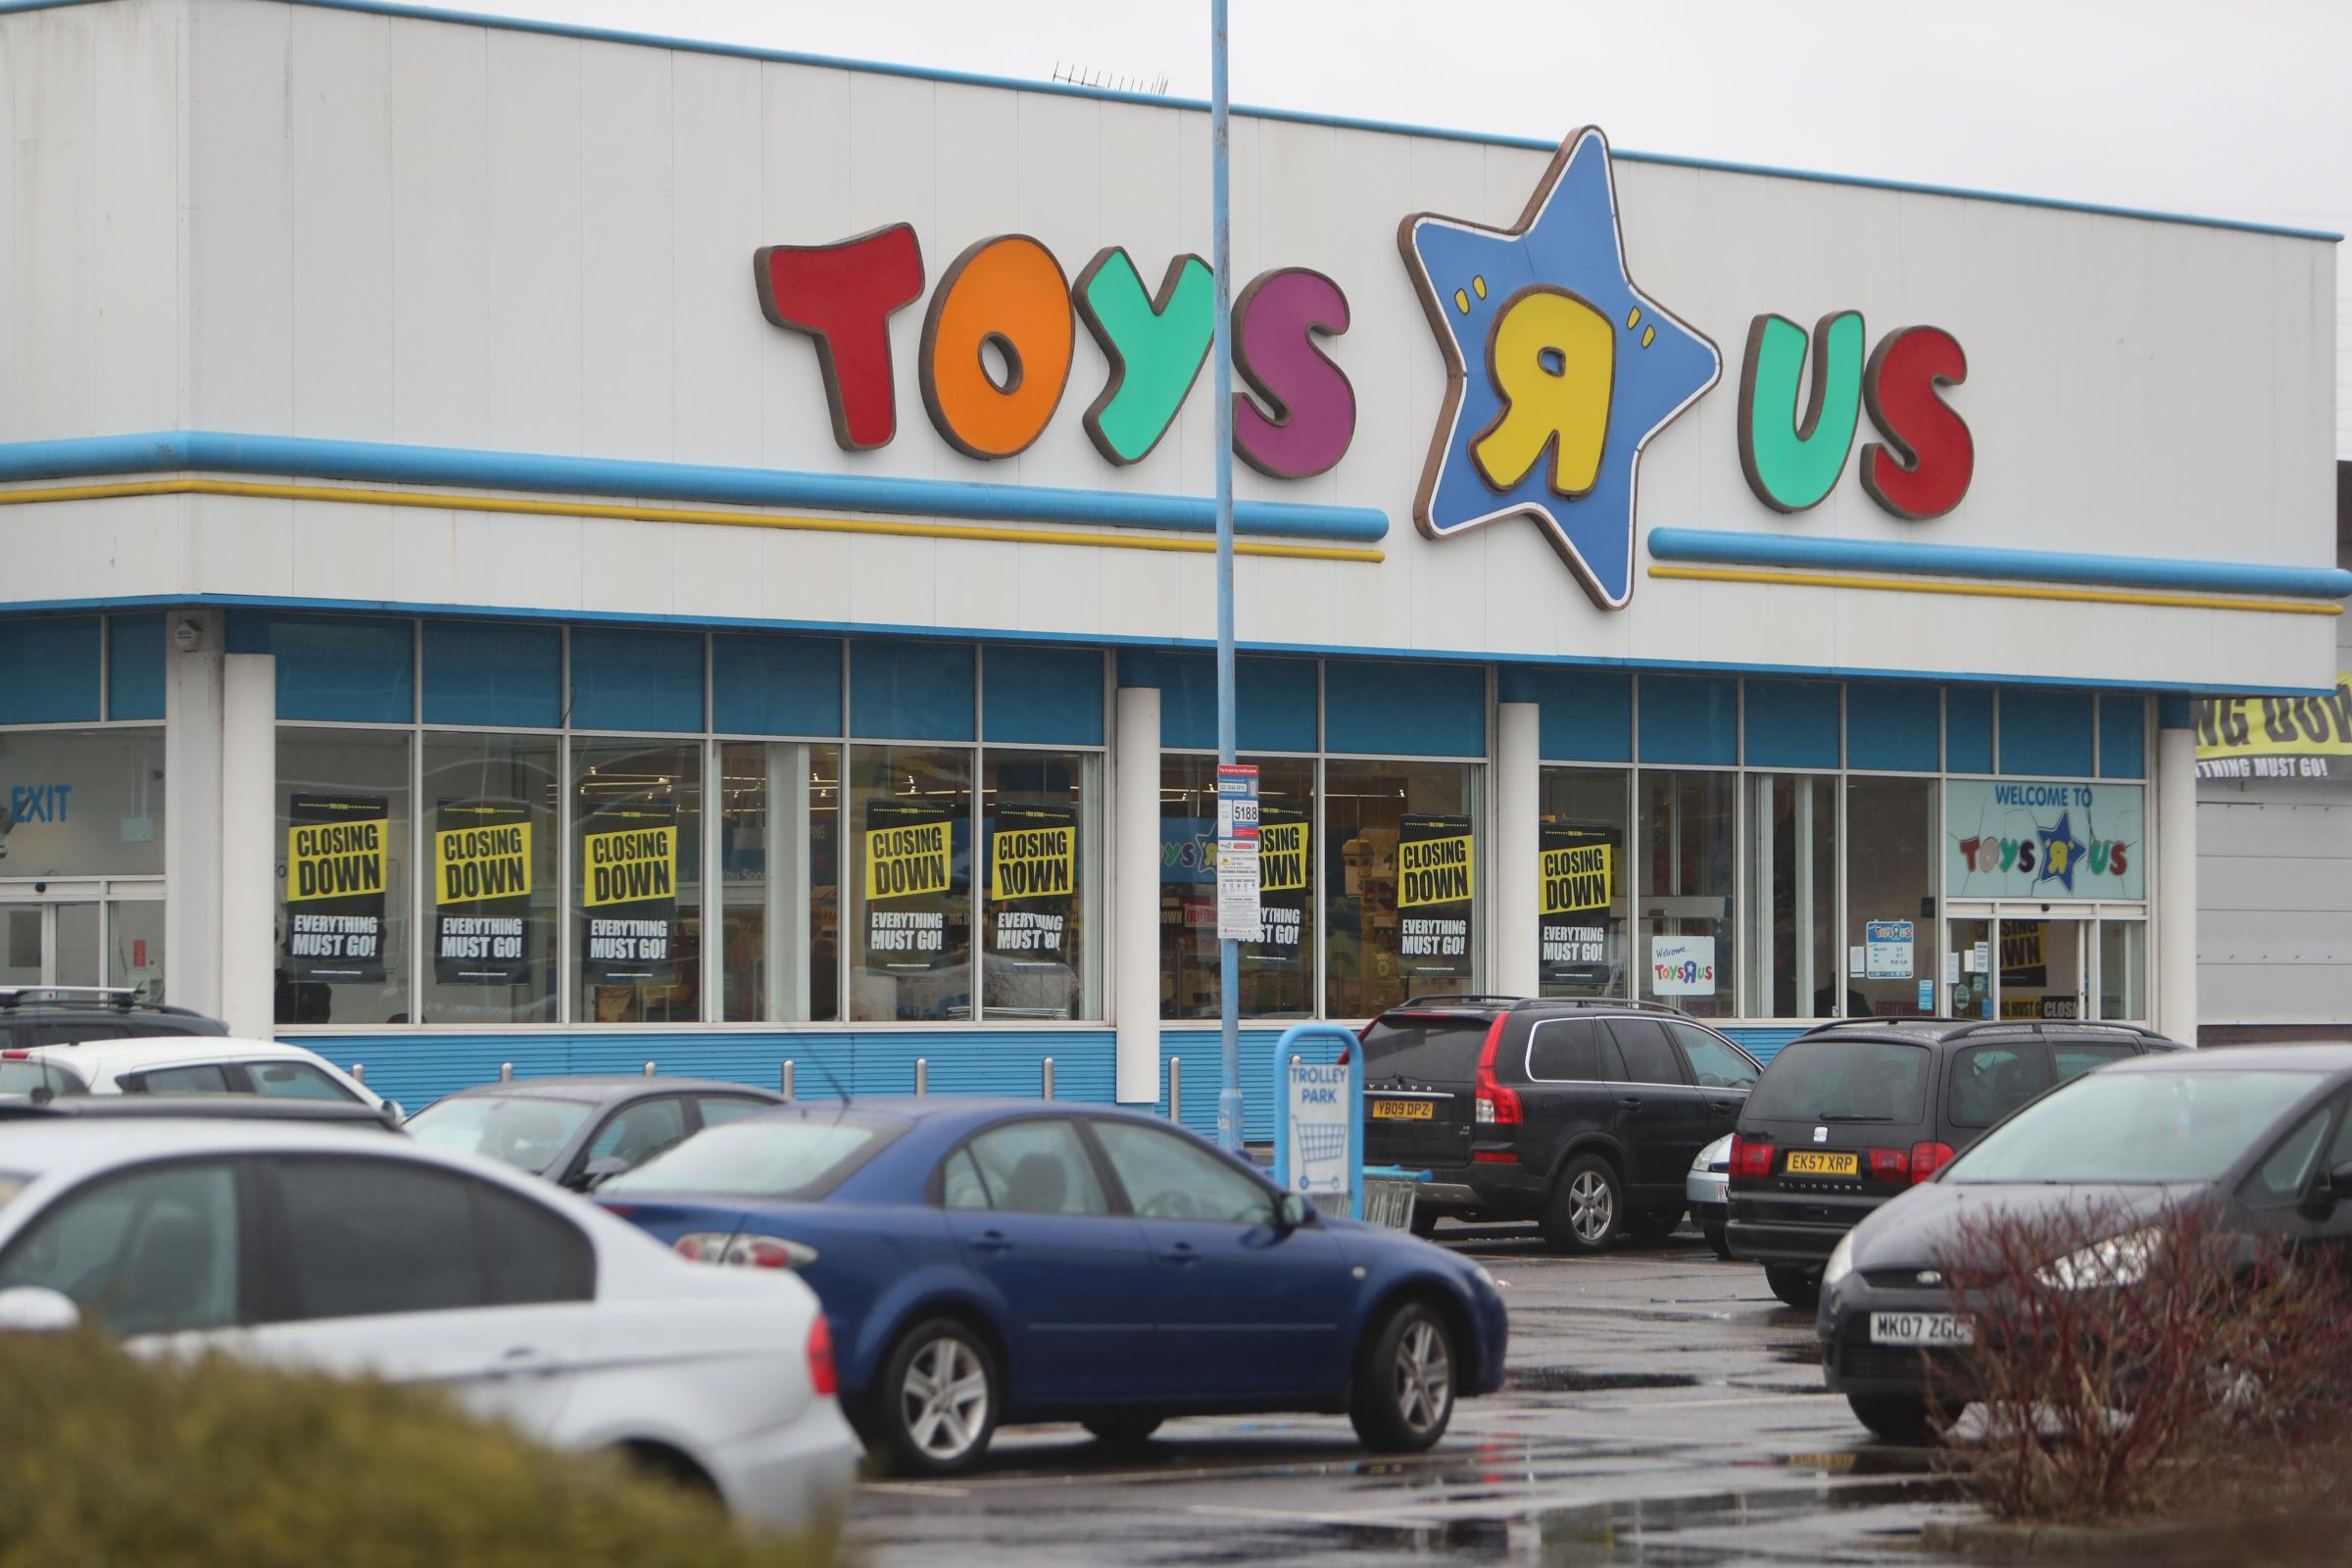 Toys R Us in Poole, which closed down